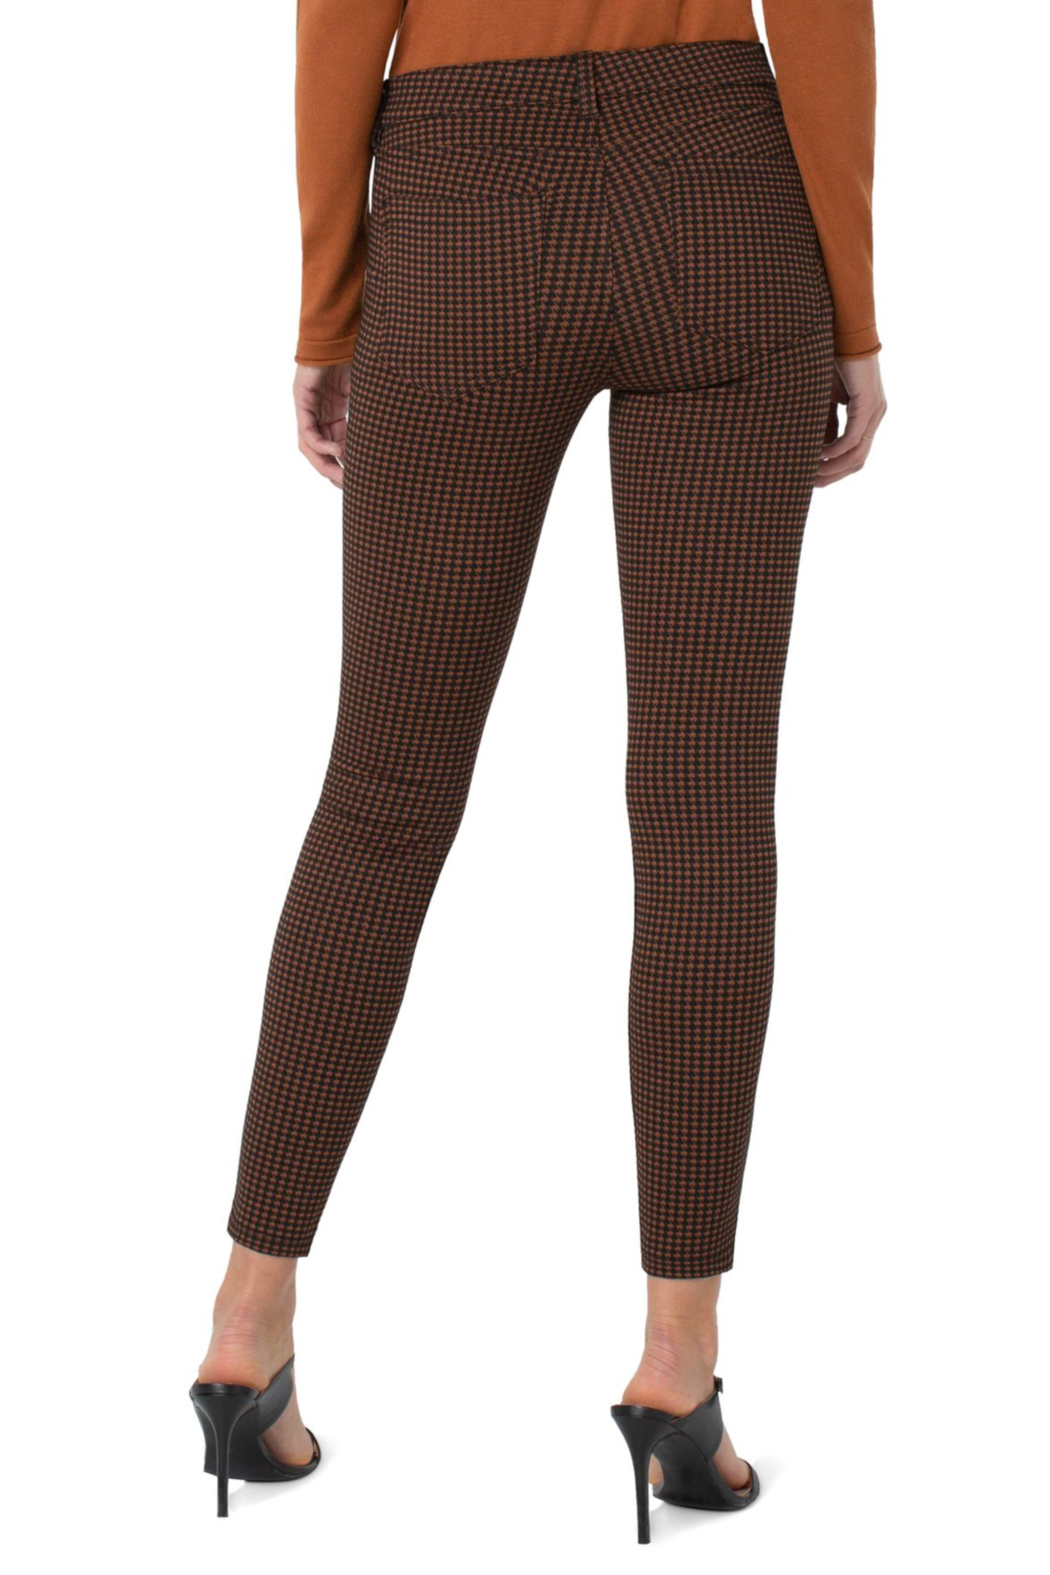 Liverpool  MADONNA LEGGING IN RUST/BLACK HOUNDSTOOTH - Front Full Image